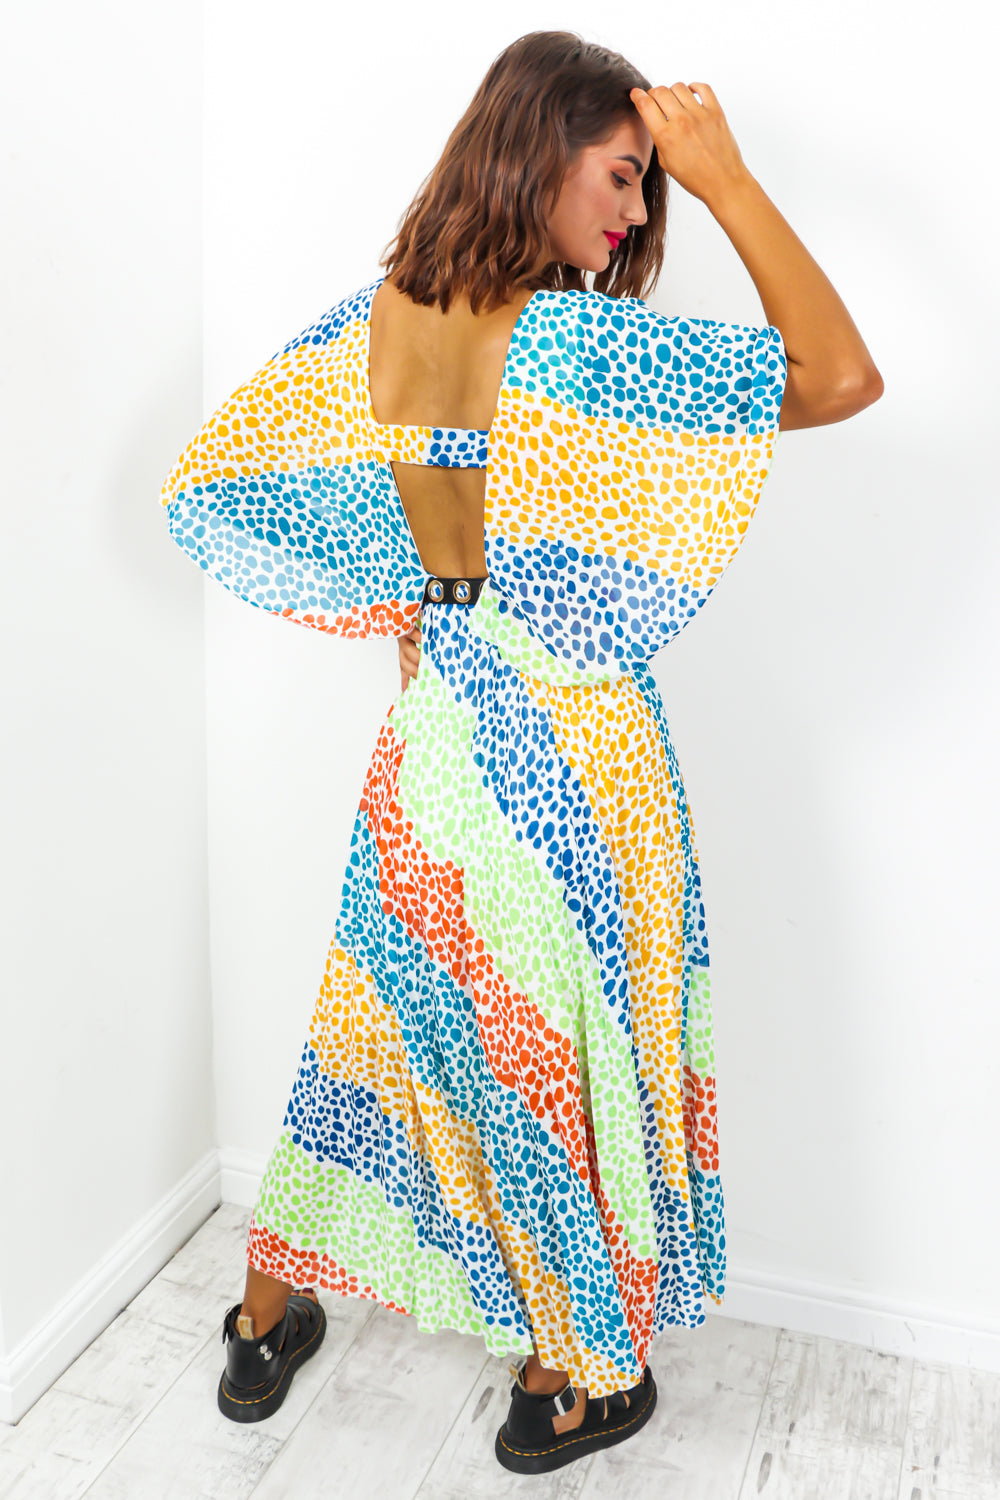 Timeless - Maxi Dress In BLUE/MULTI/SPOT